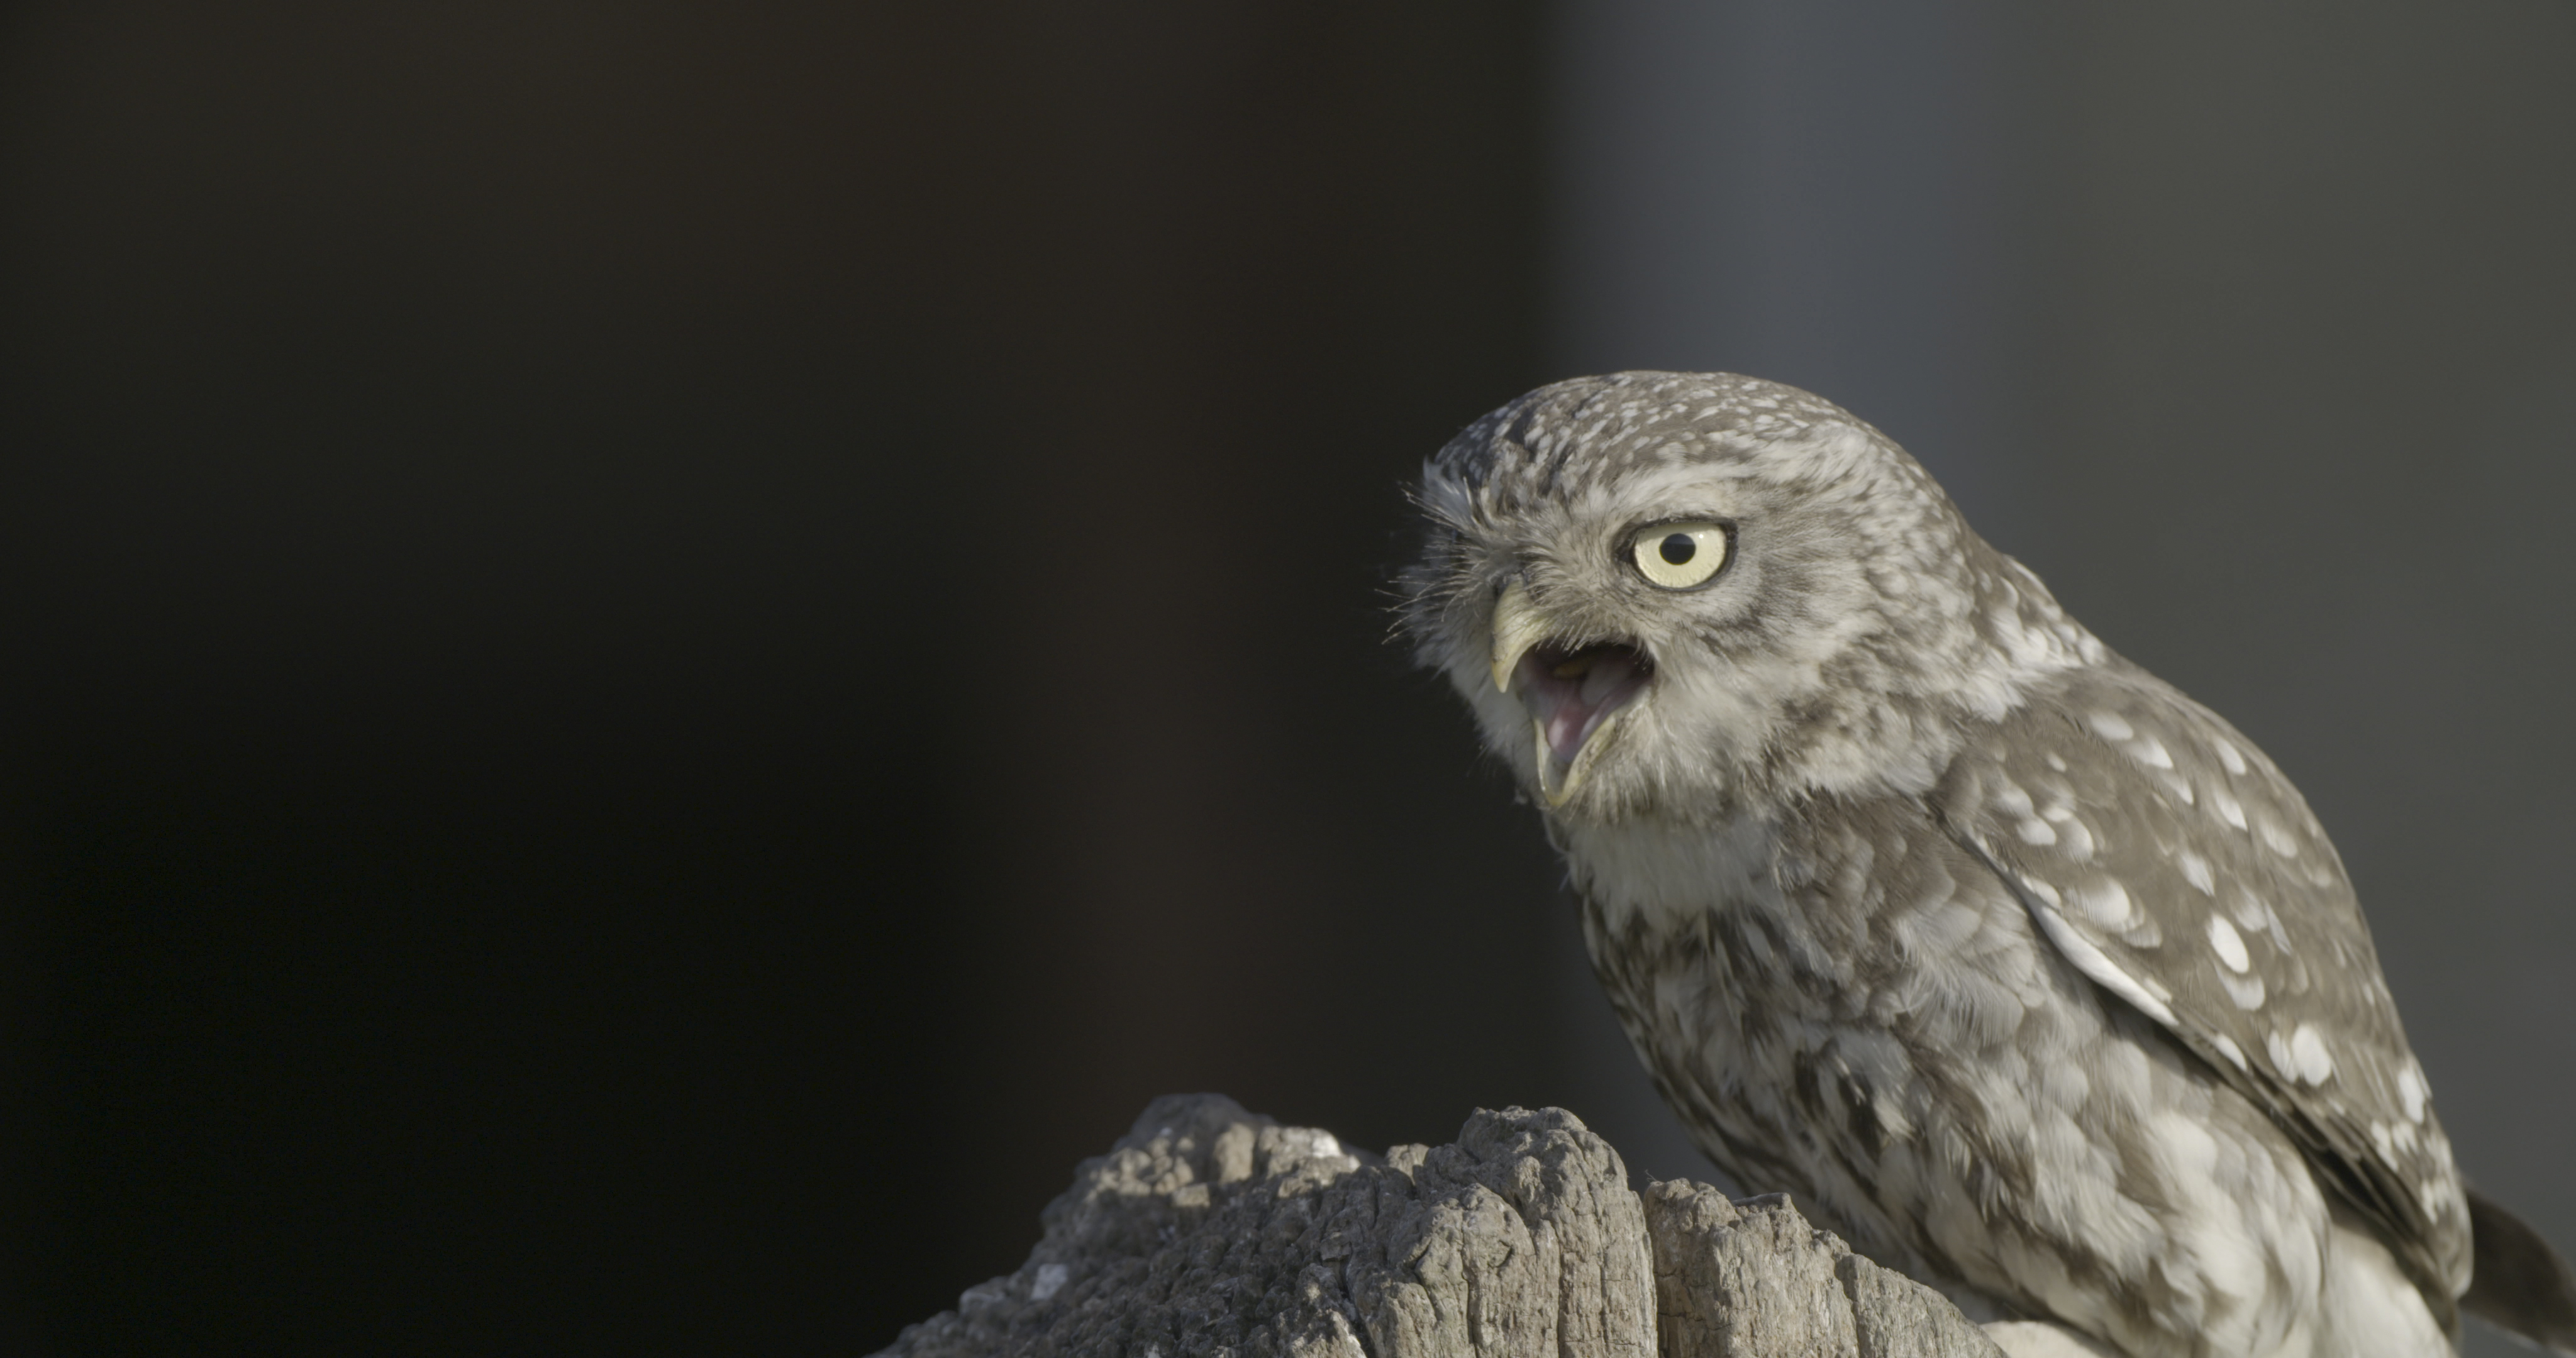 jackdaw  stock dove and little owl nest boxes